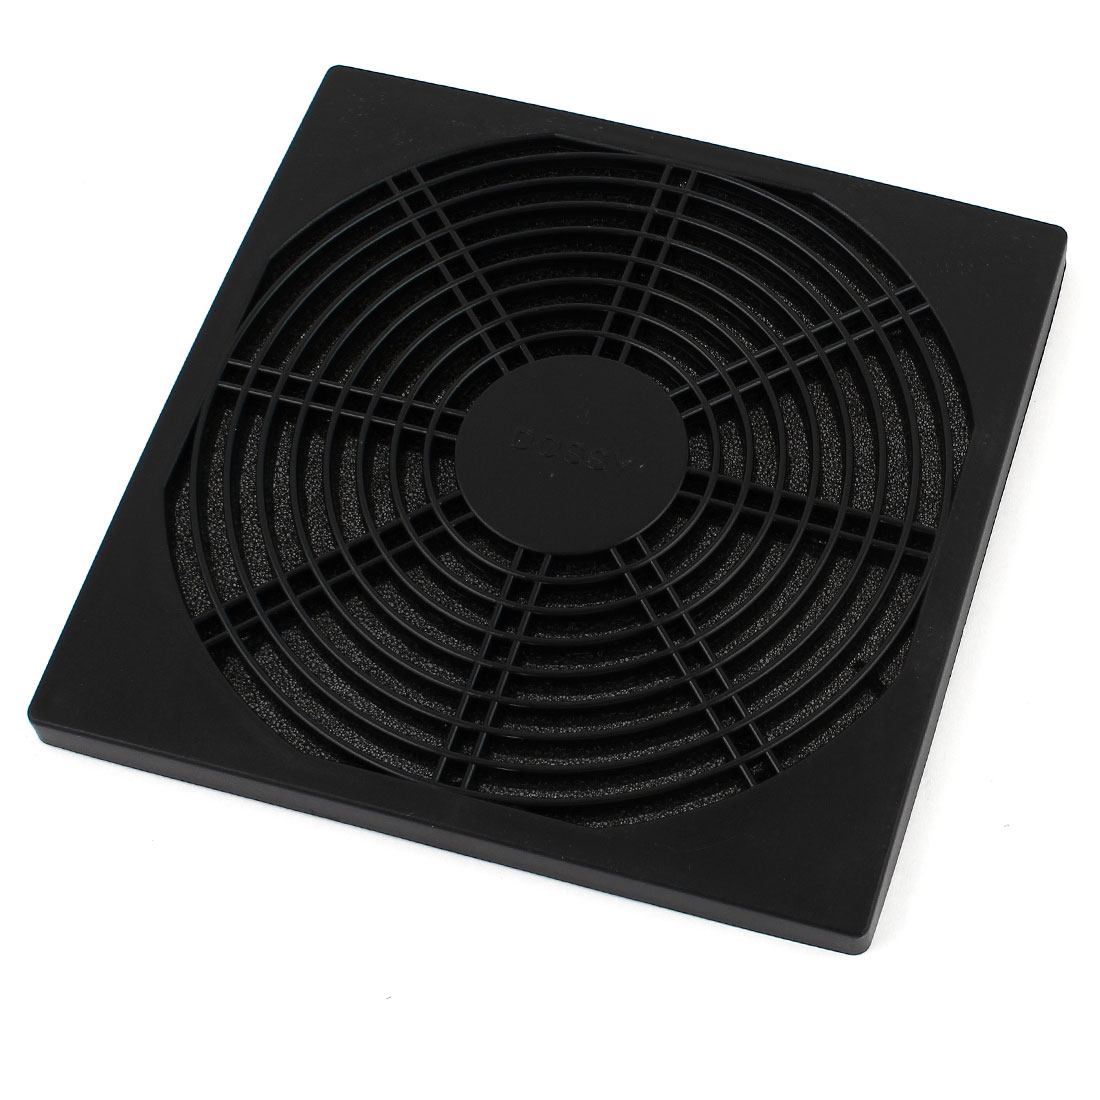 175mm x 175mm Black Plastic Fan Grill Dust Filter for Cabinet Case Ventilator